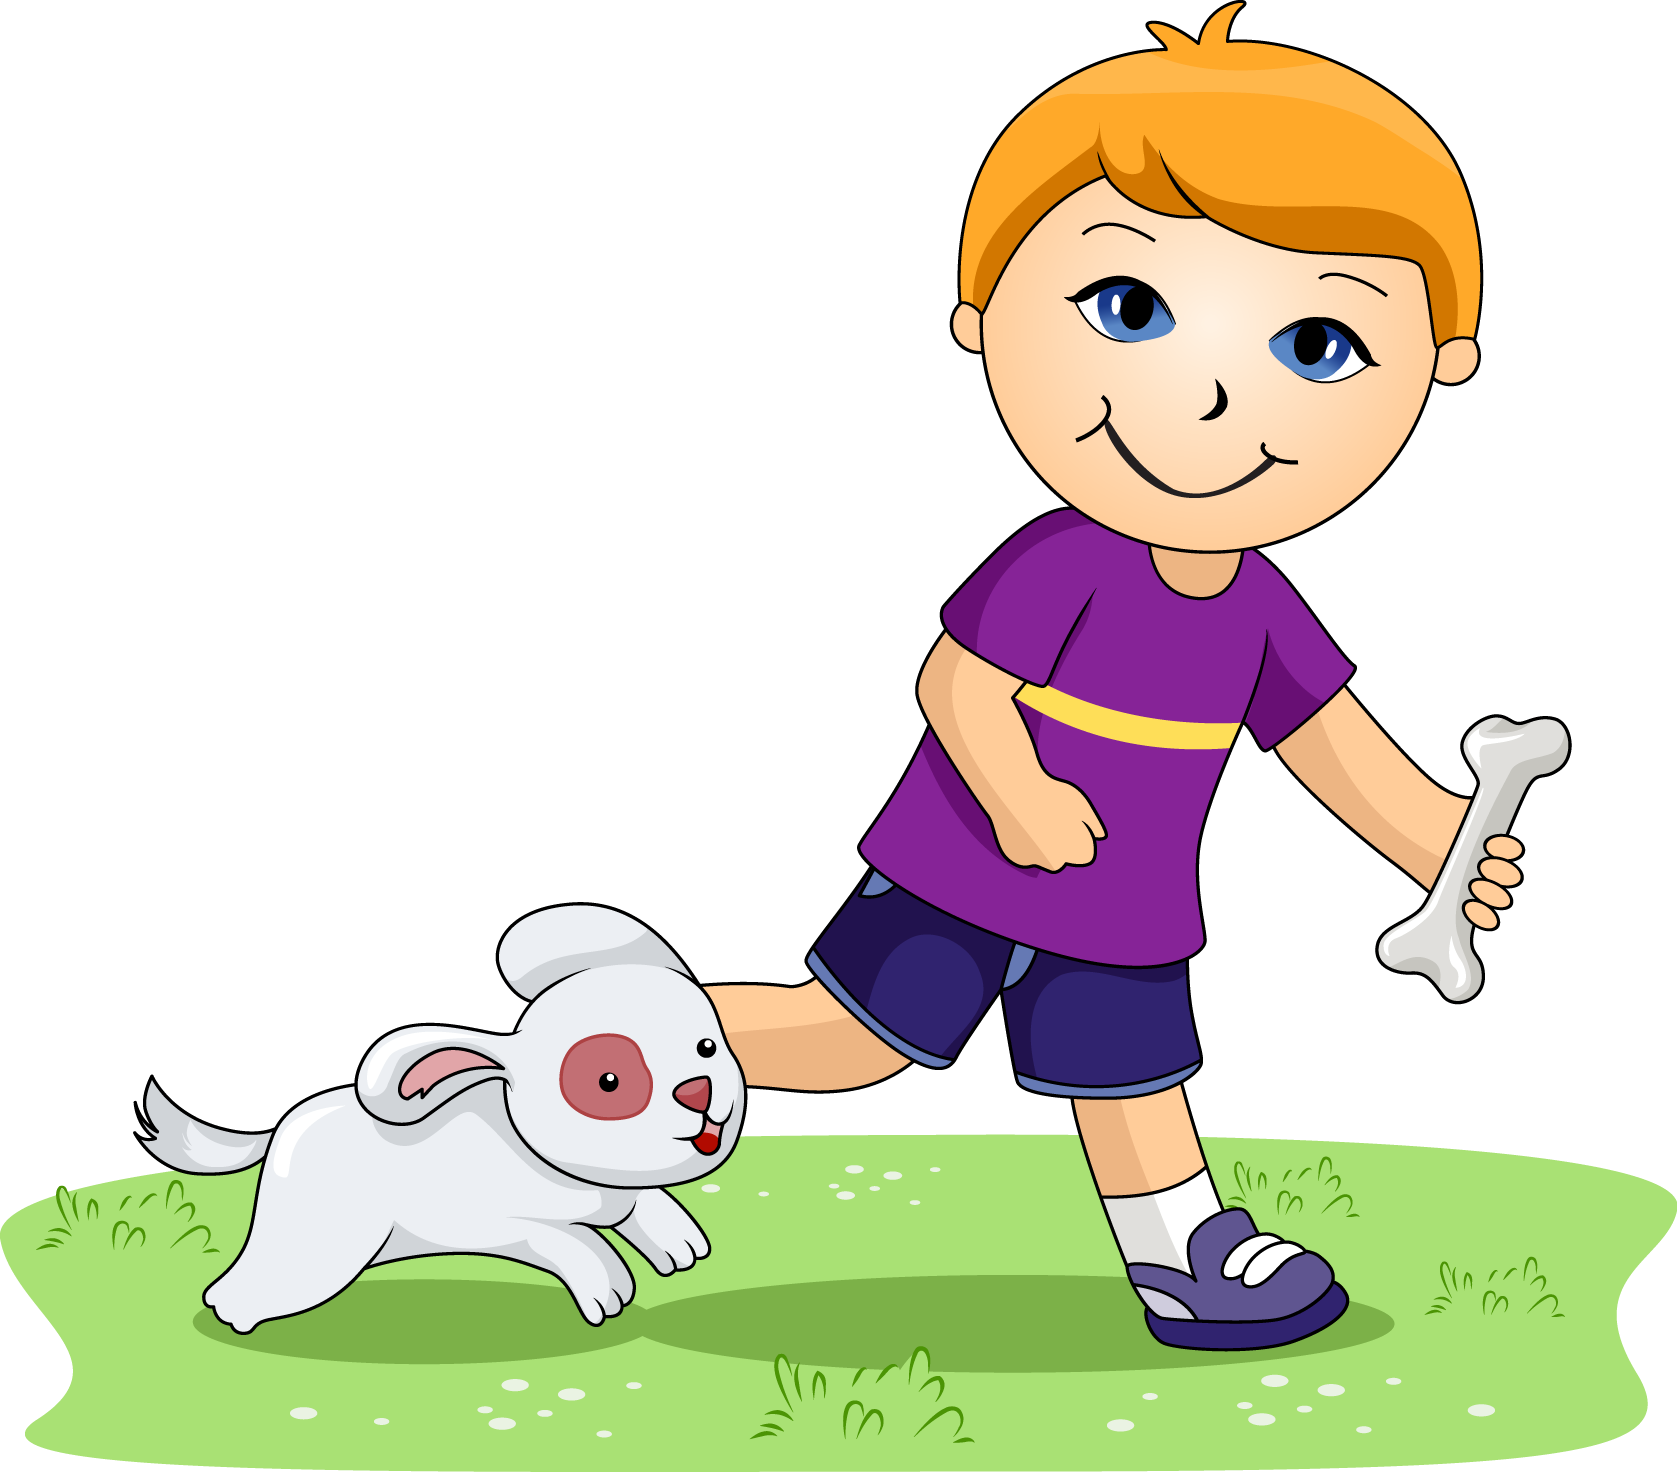 Racing clipart obstacle race. Free kids running download